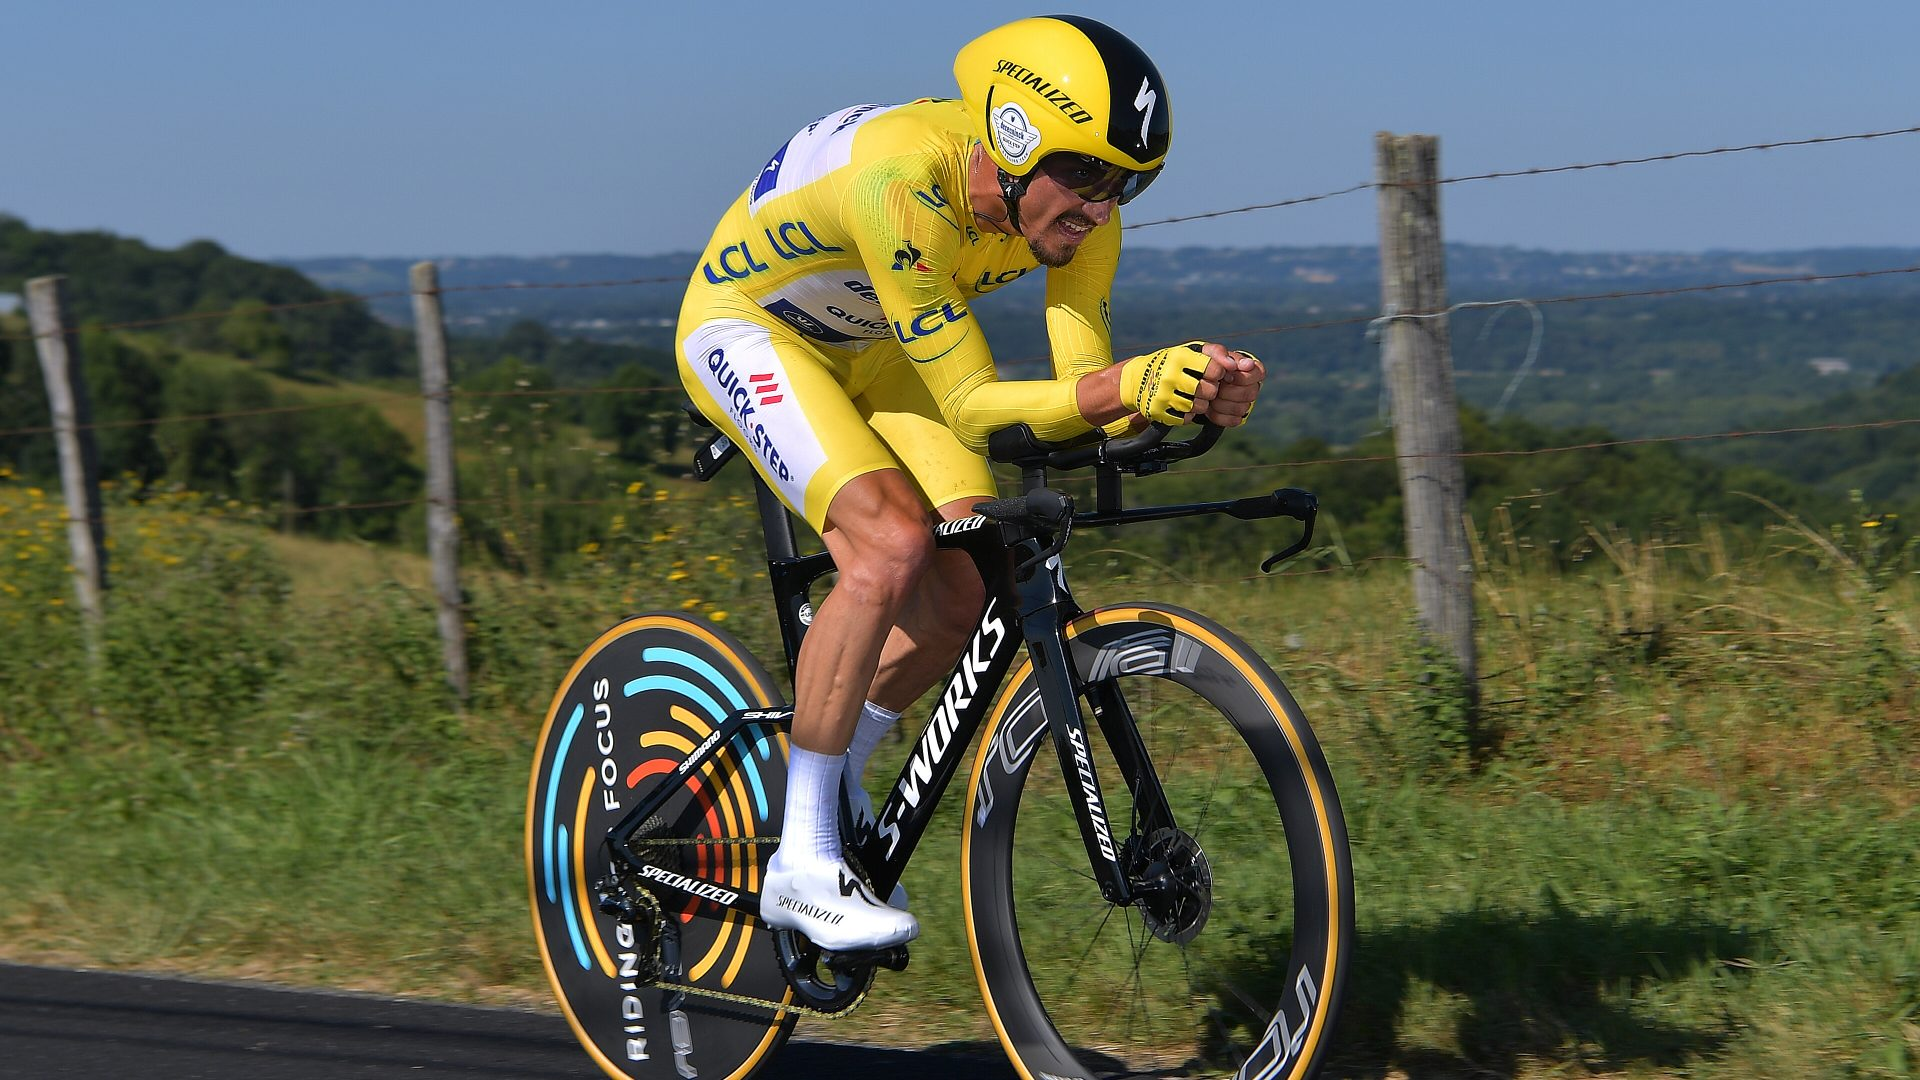 Julian Alaphilippe Crushes 2019 Tour de France Stage 13 Time Trial 27